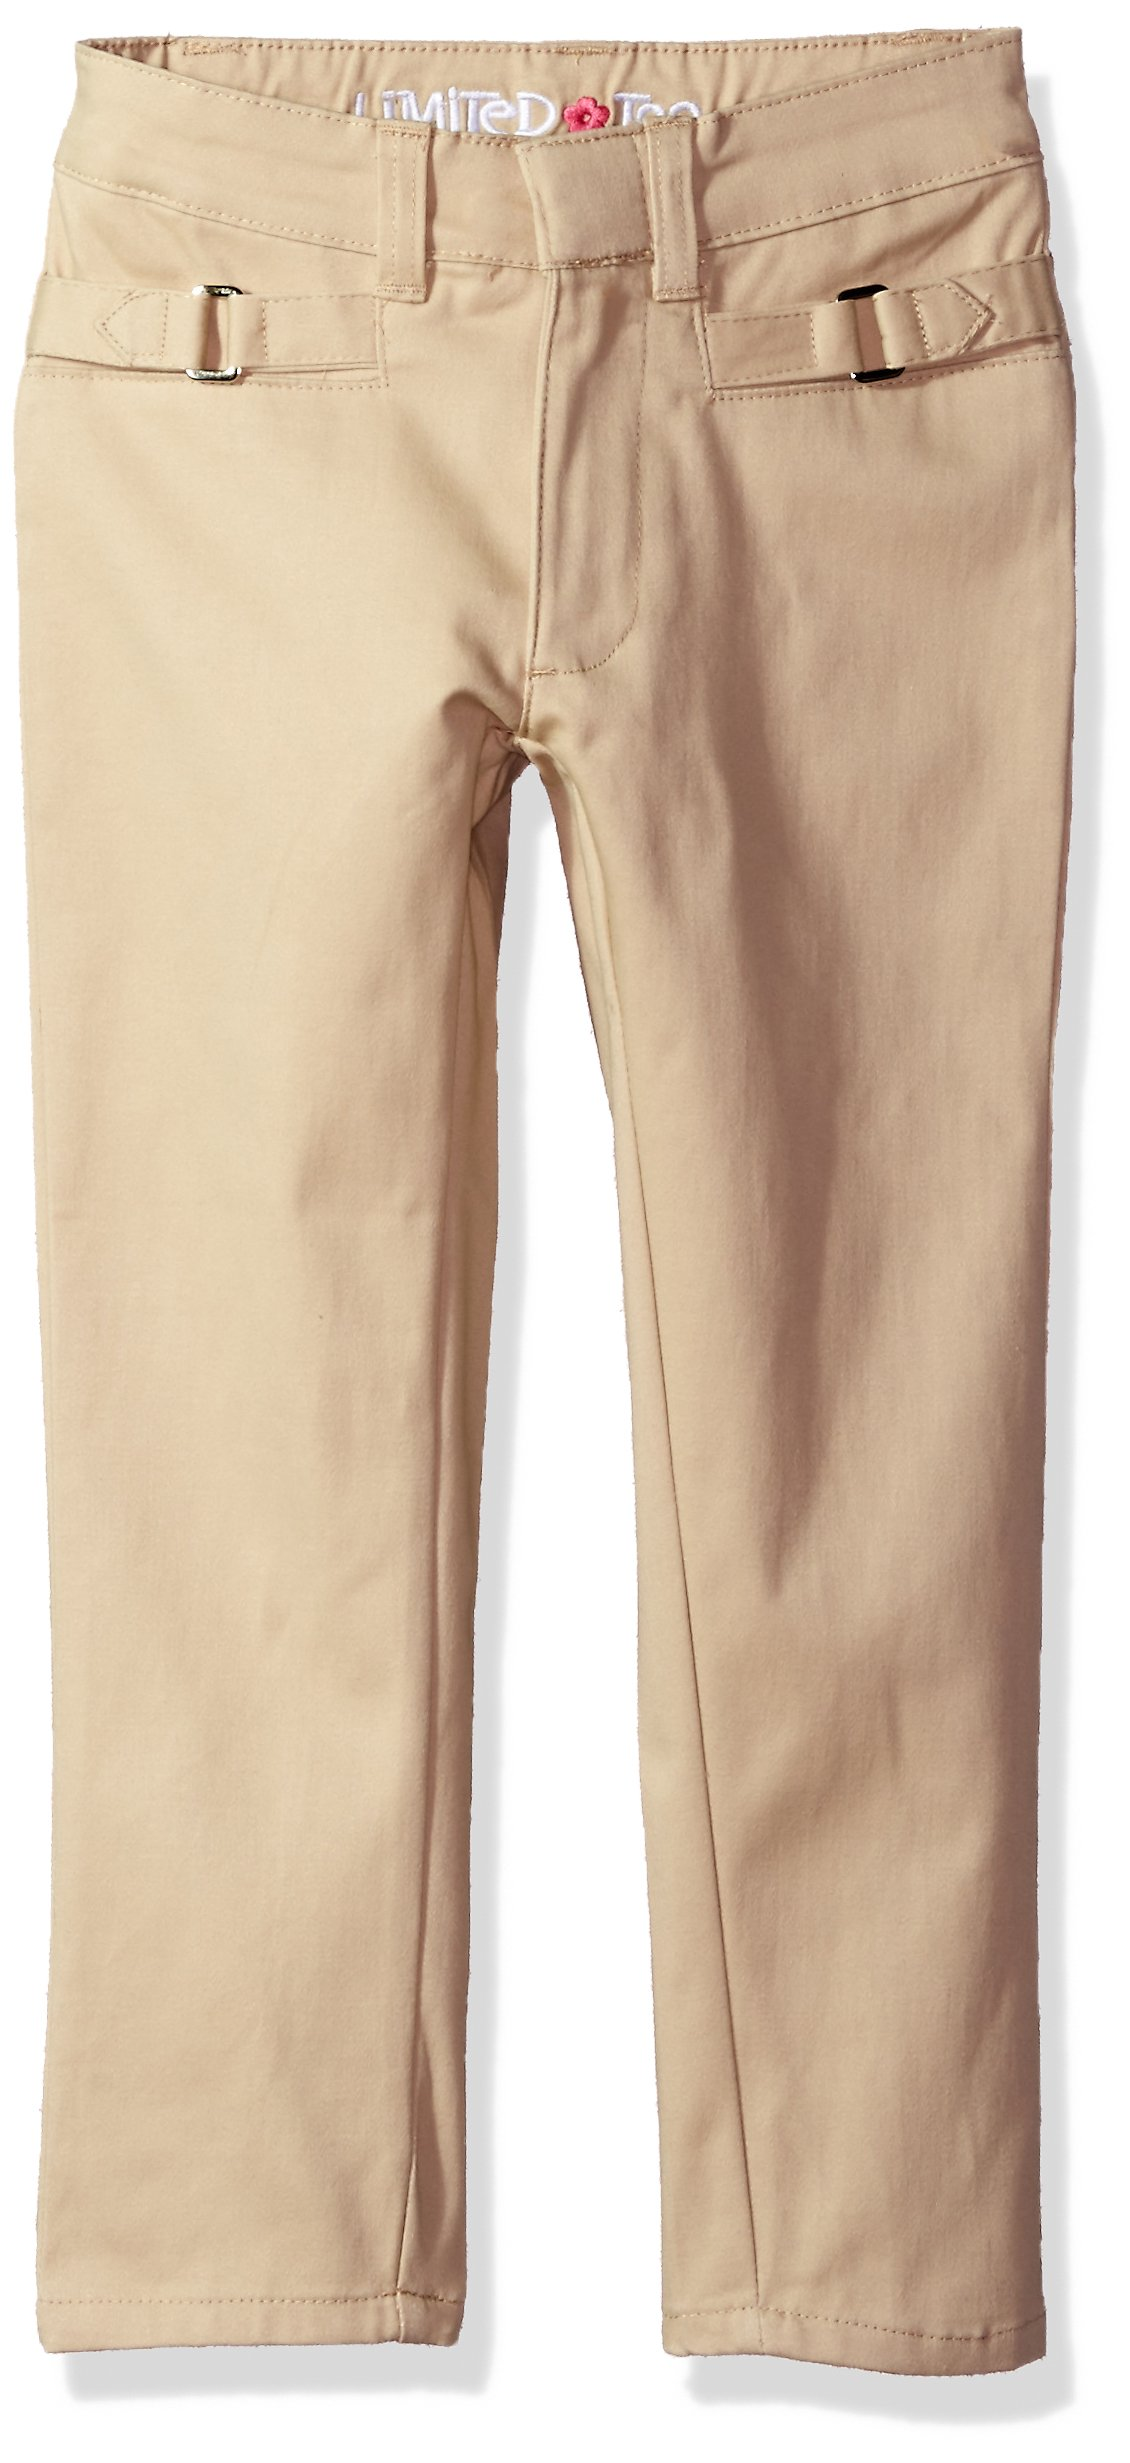 Limited Too Little Girls' Twill Pant (More Styles Available), EZ Stretch Skinny Khaki-CAJH, 6X